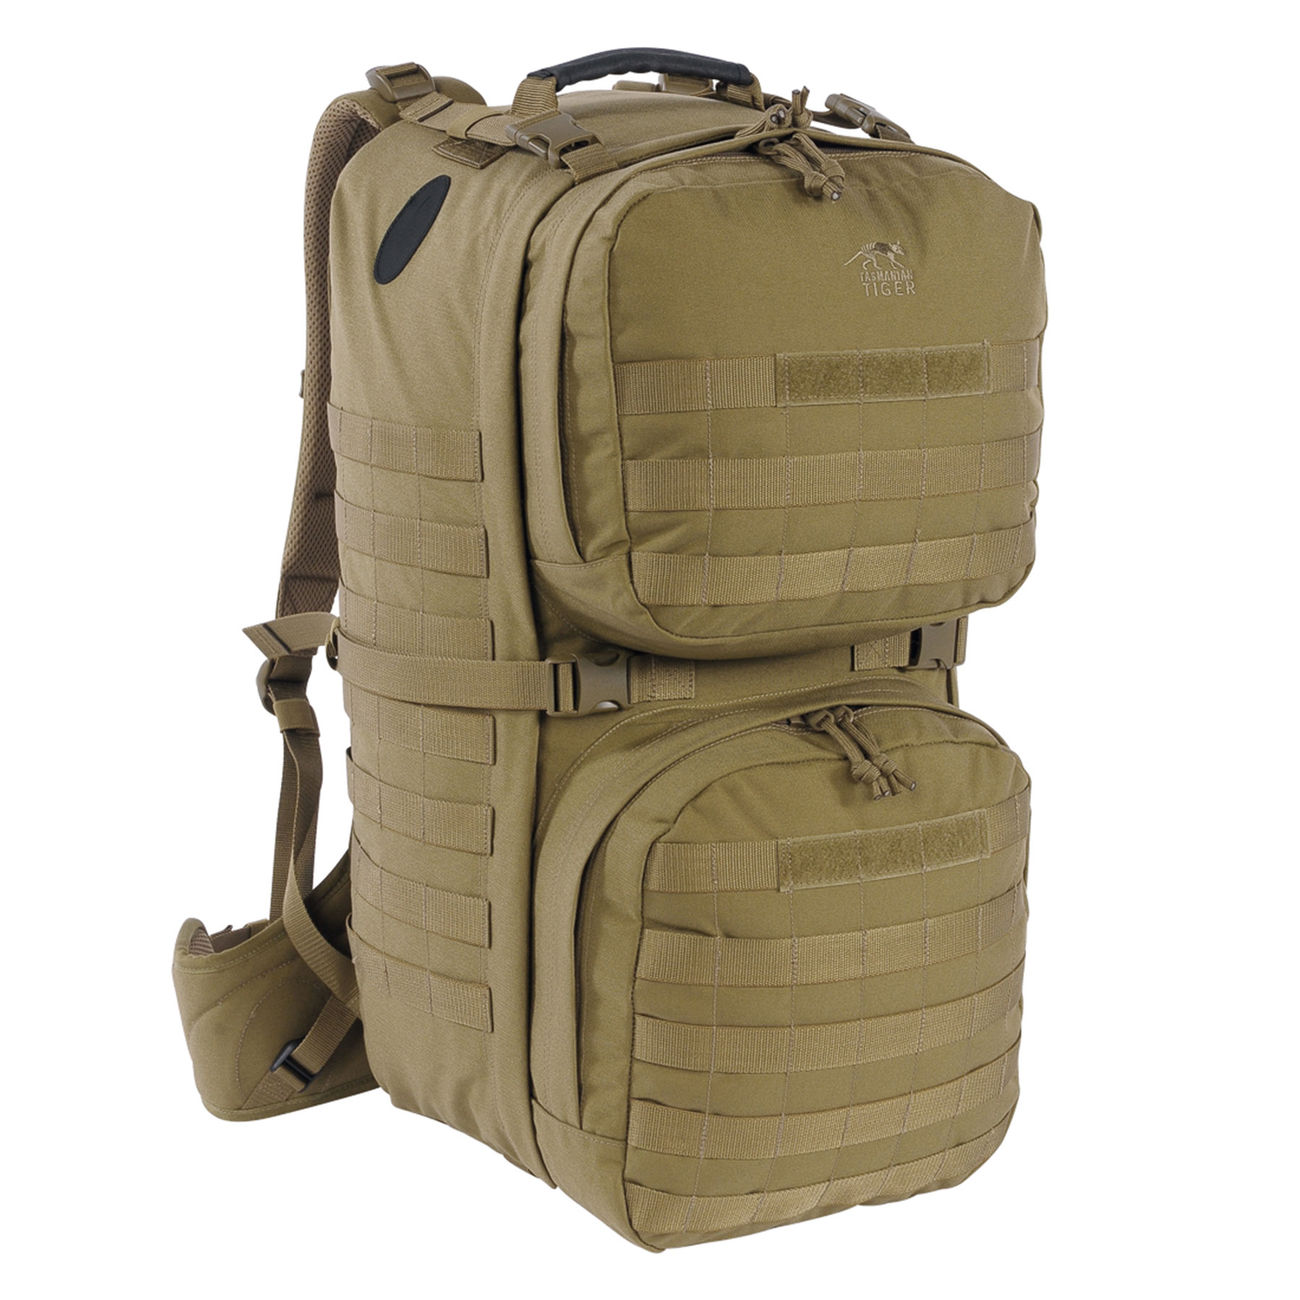 TT Rucksack Bug Out Pack khaki 0